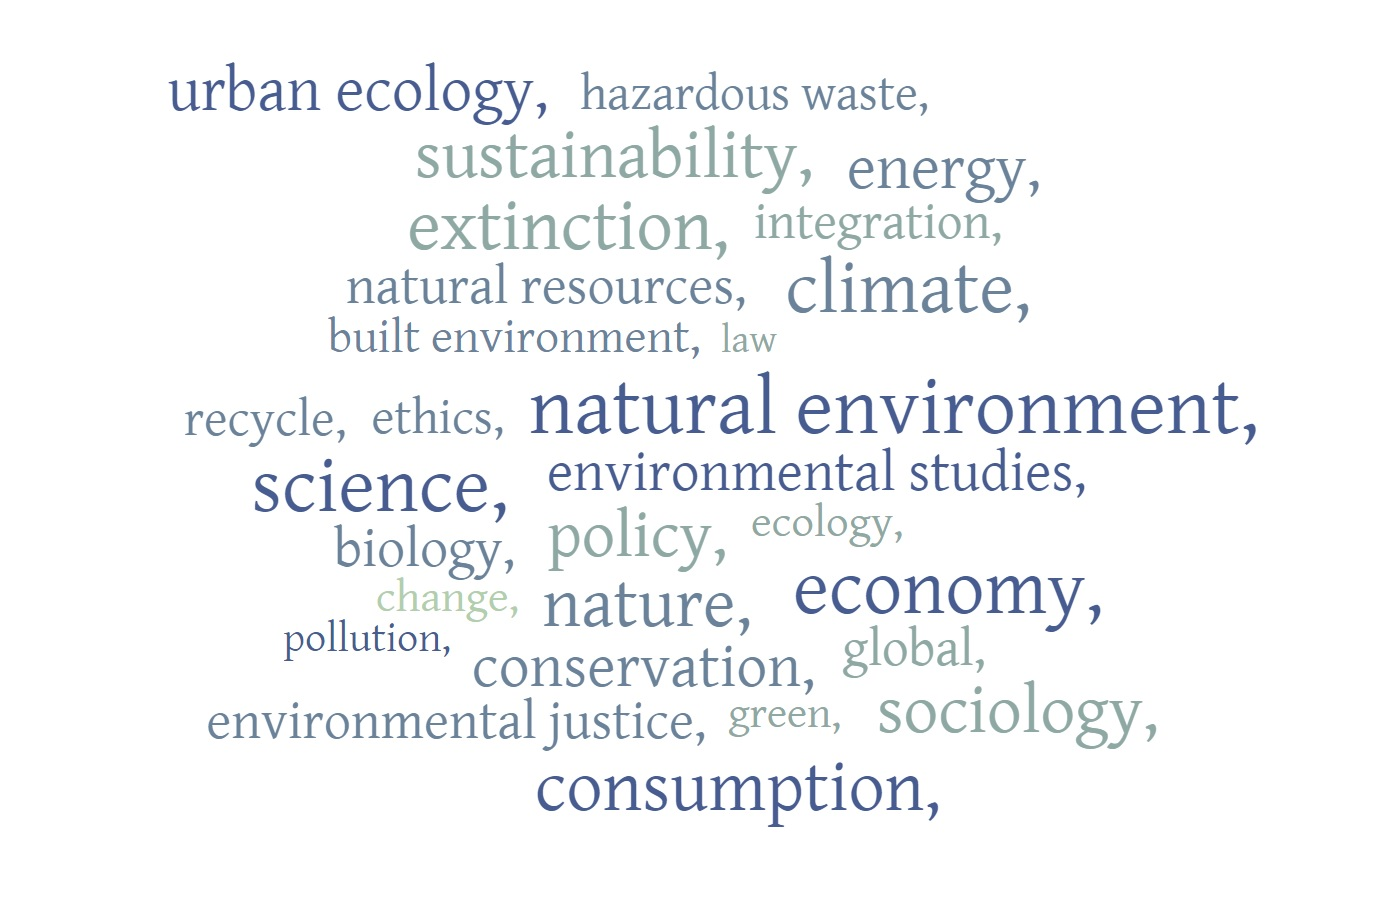 word cloud of terms related to environmental issues